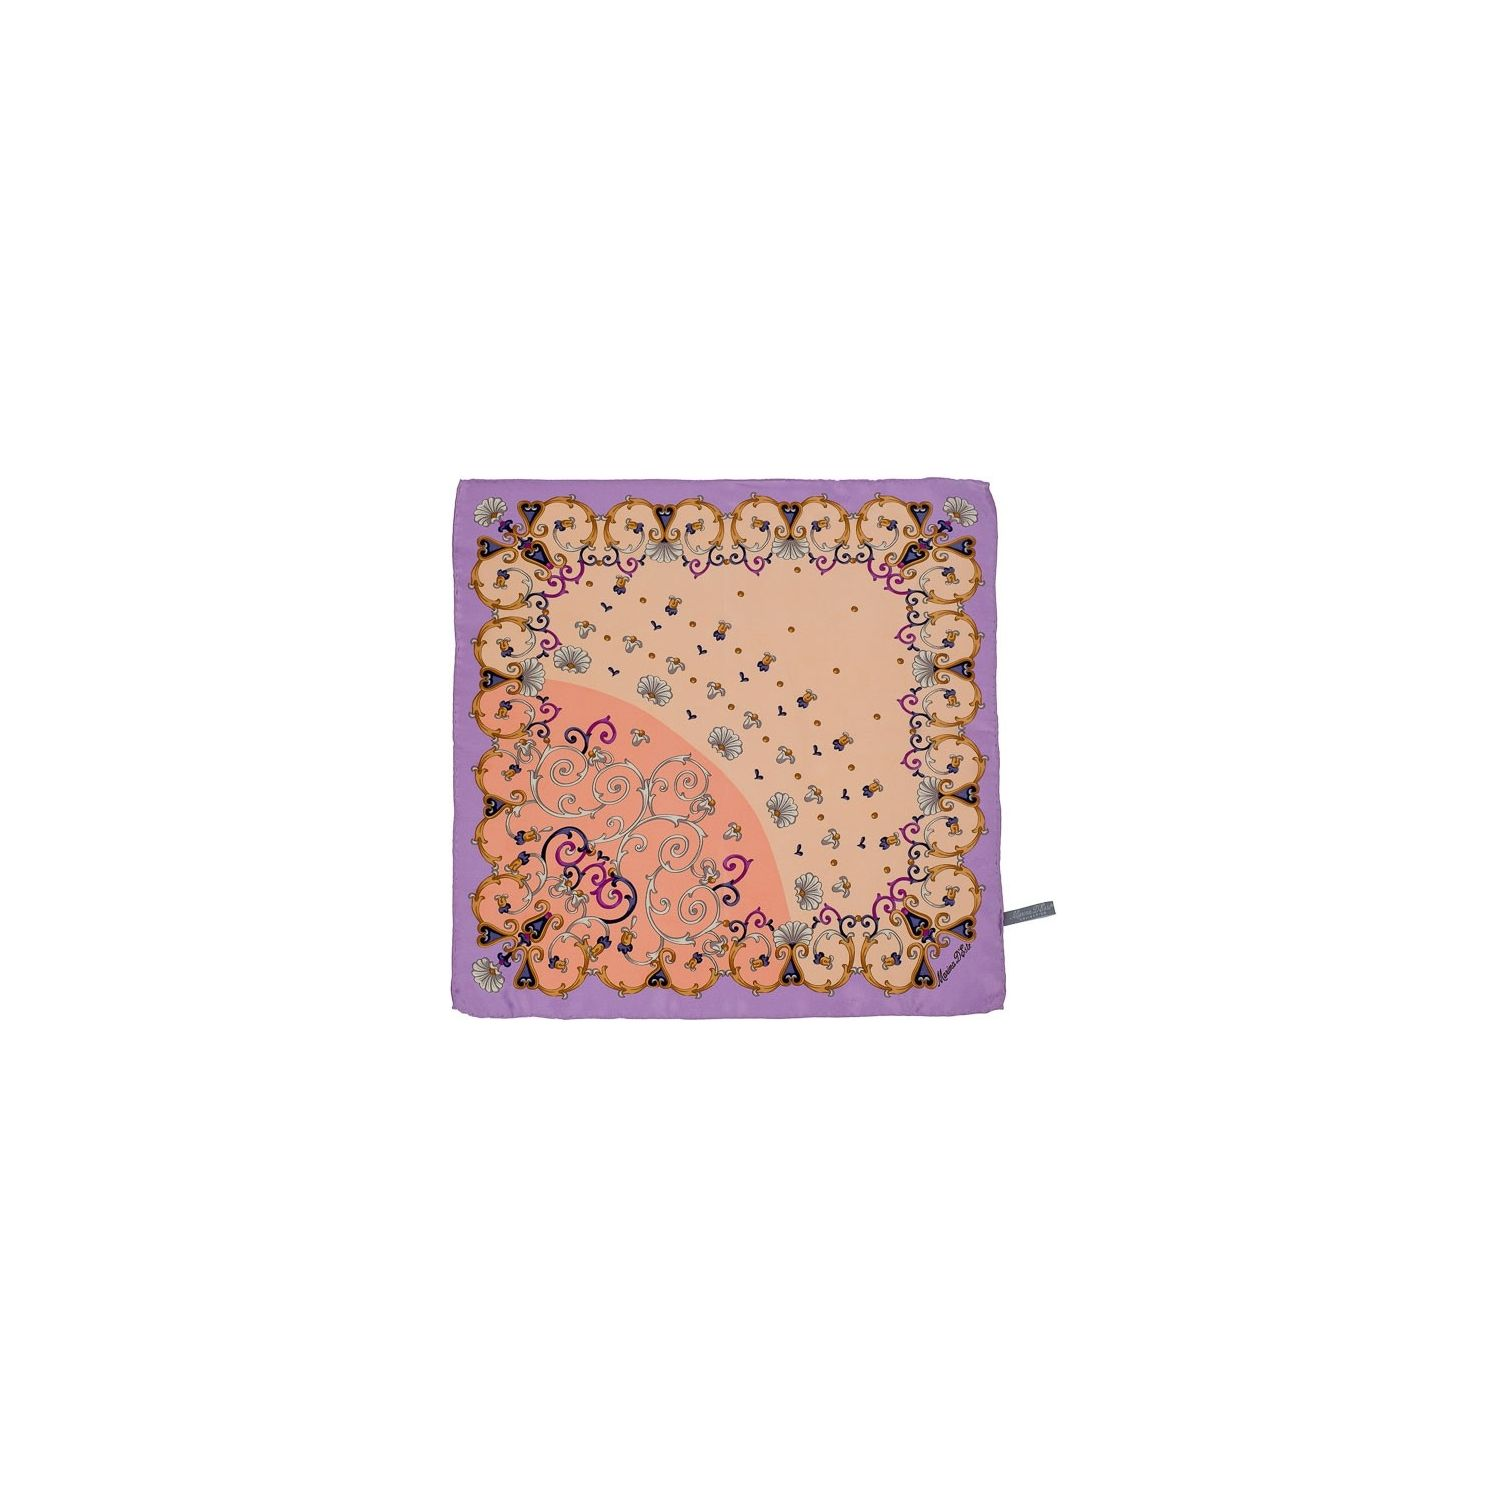 Marina D'Este pink and lilac lace Squared Scarf